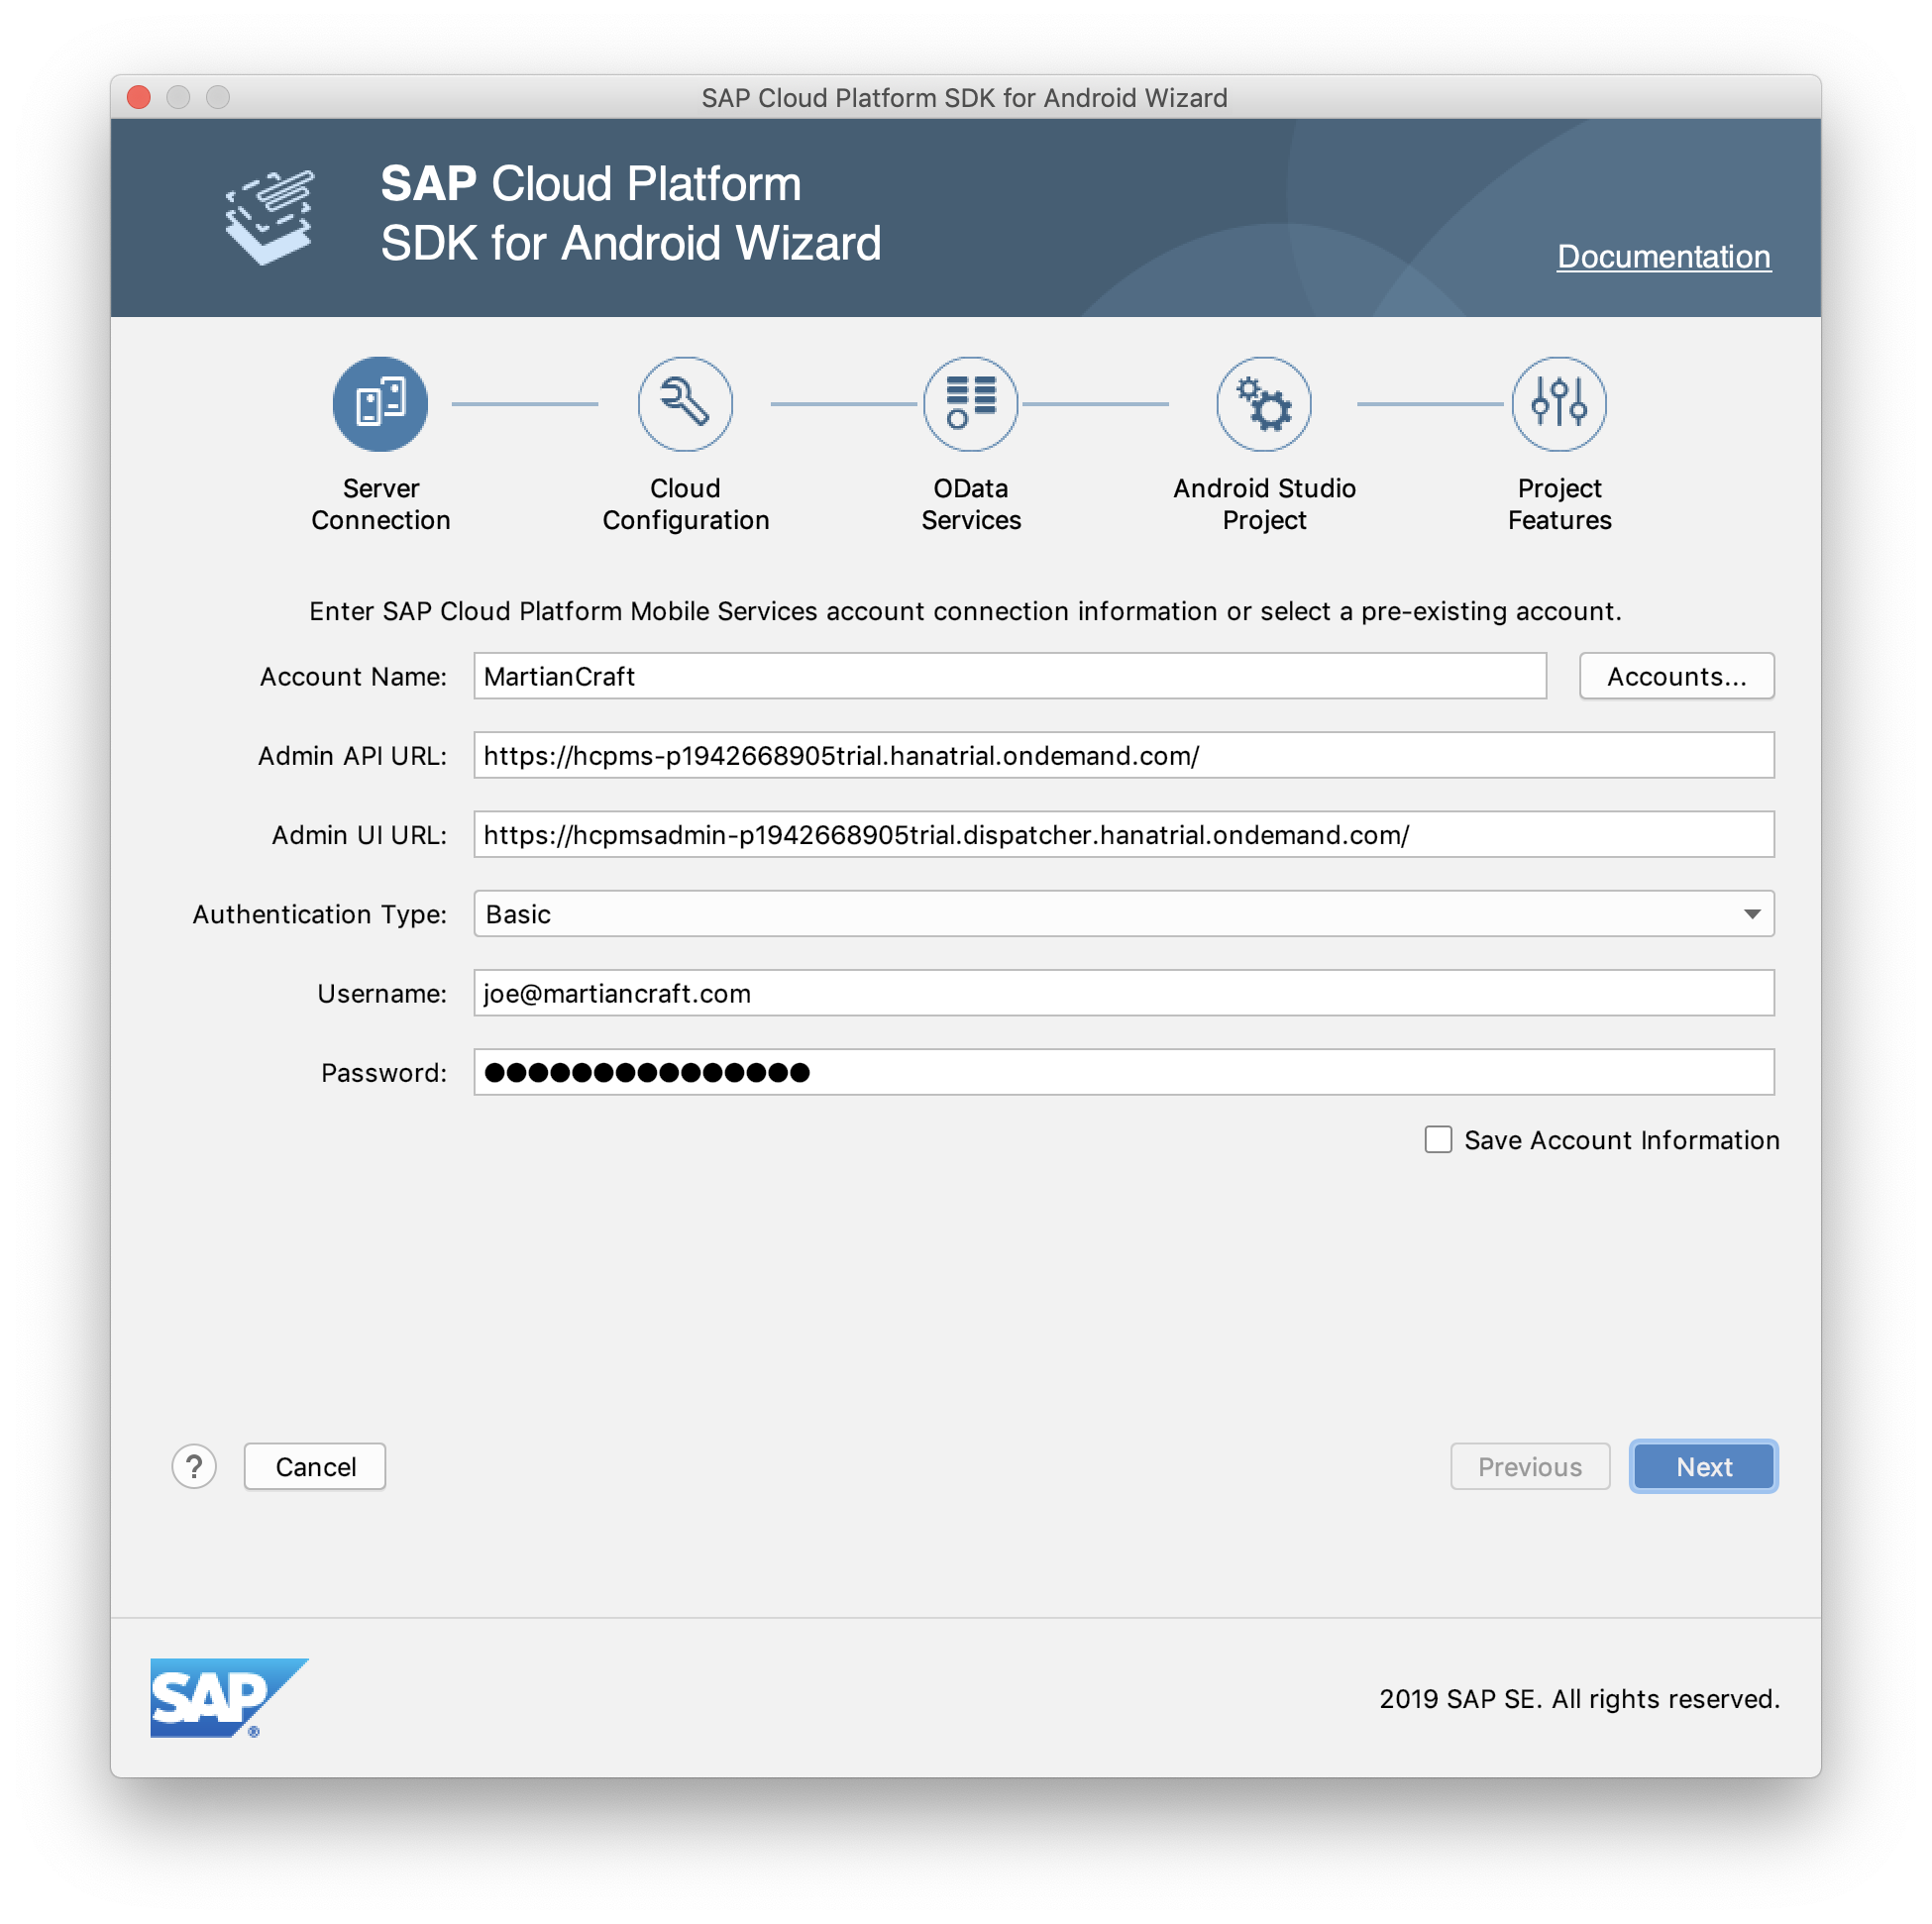 Creating a Corporate Directory App with SAP's Cloud Platform SDK for